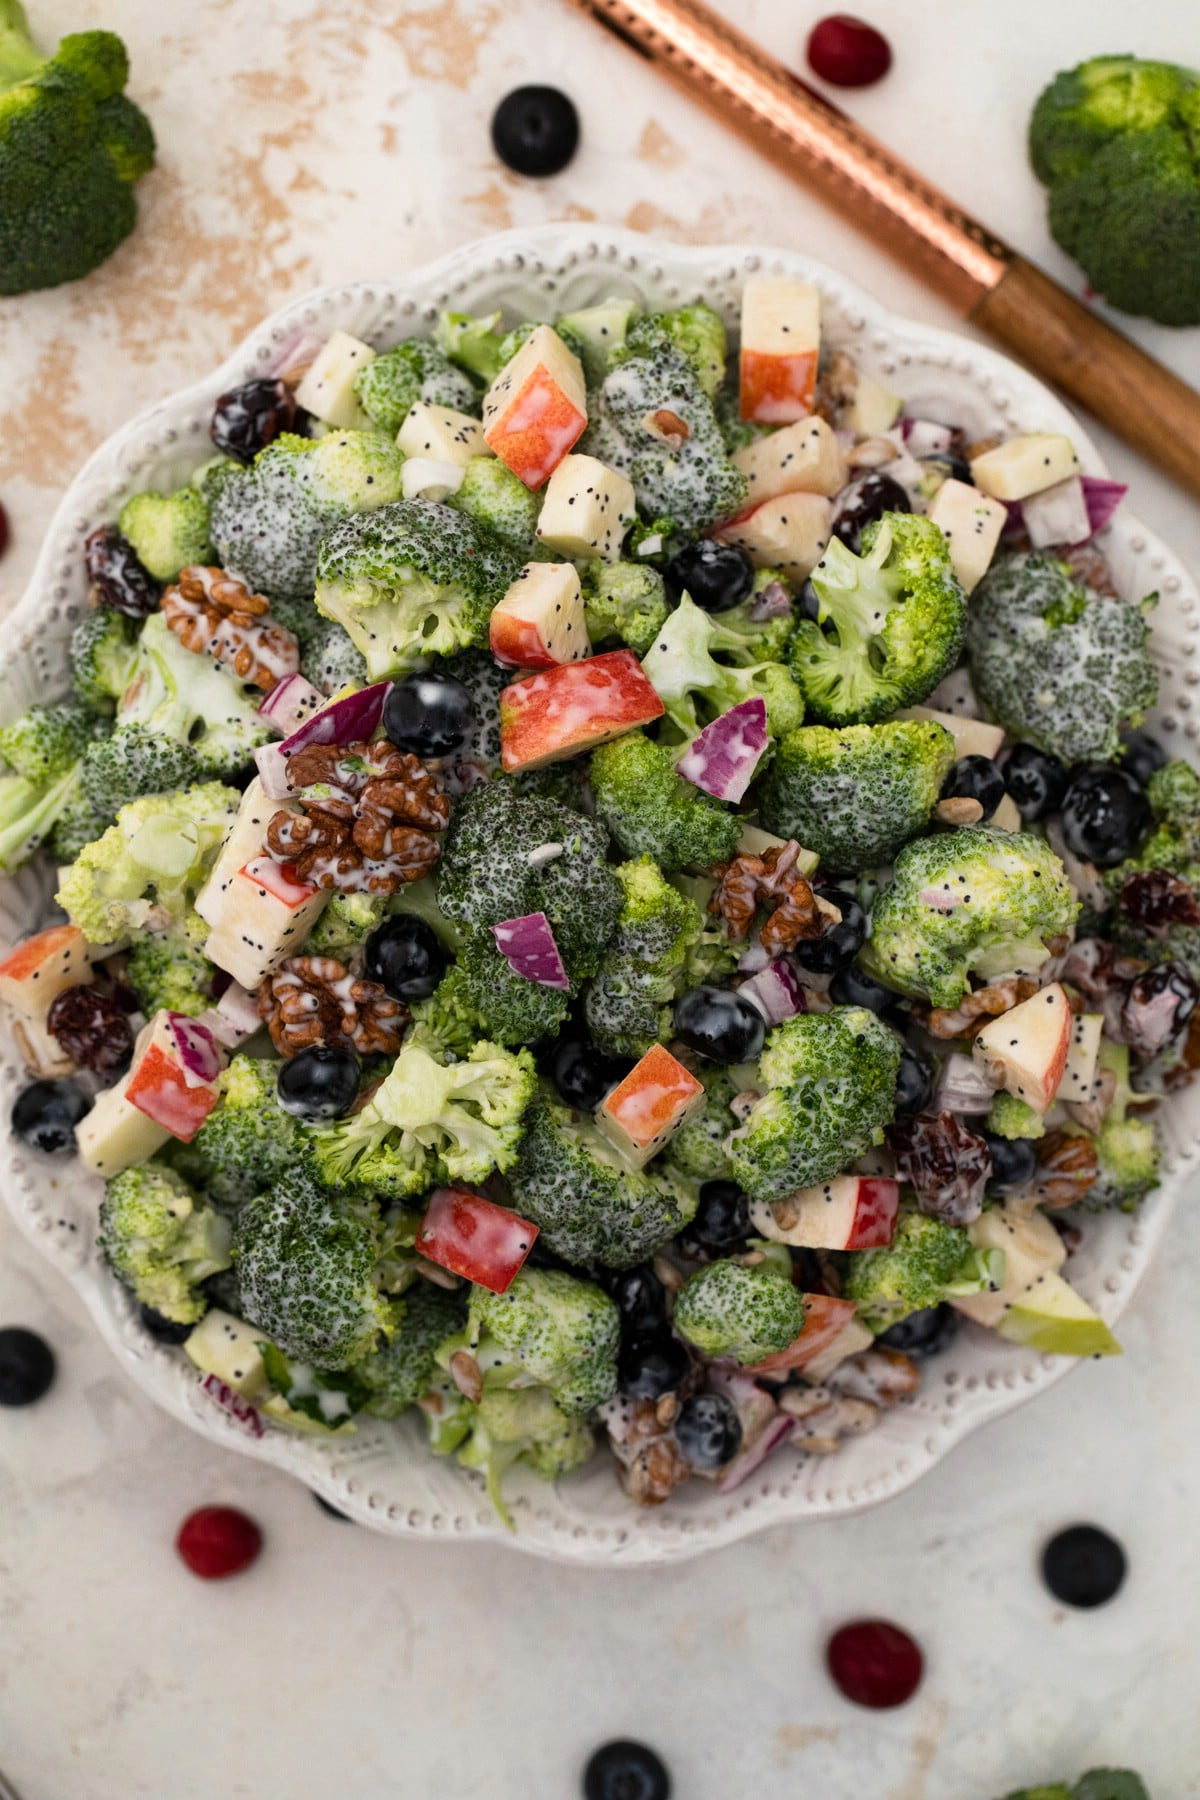 White bowl filled with broccoli salad